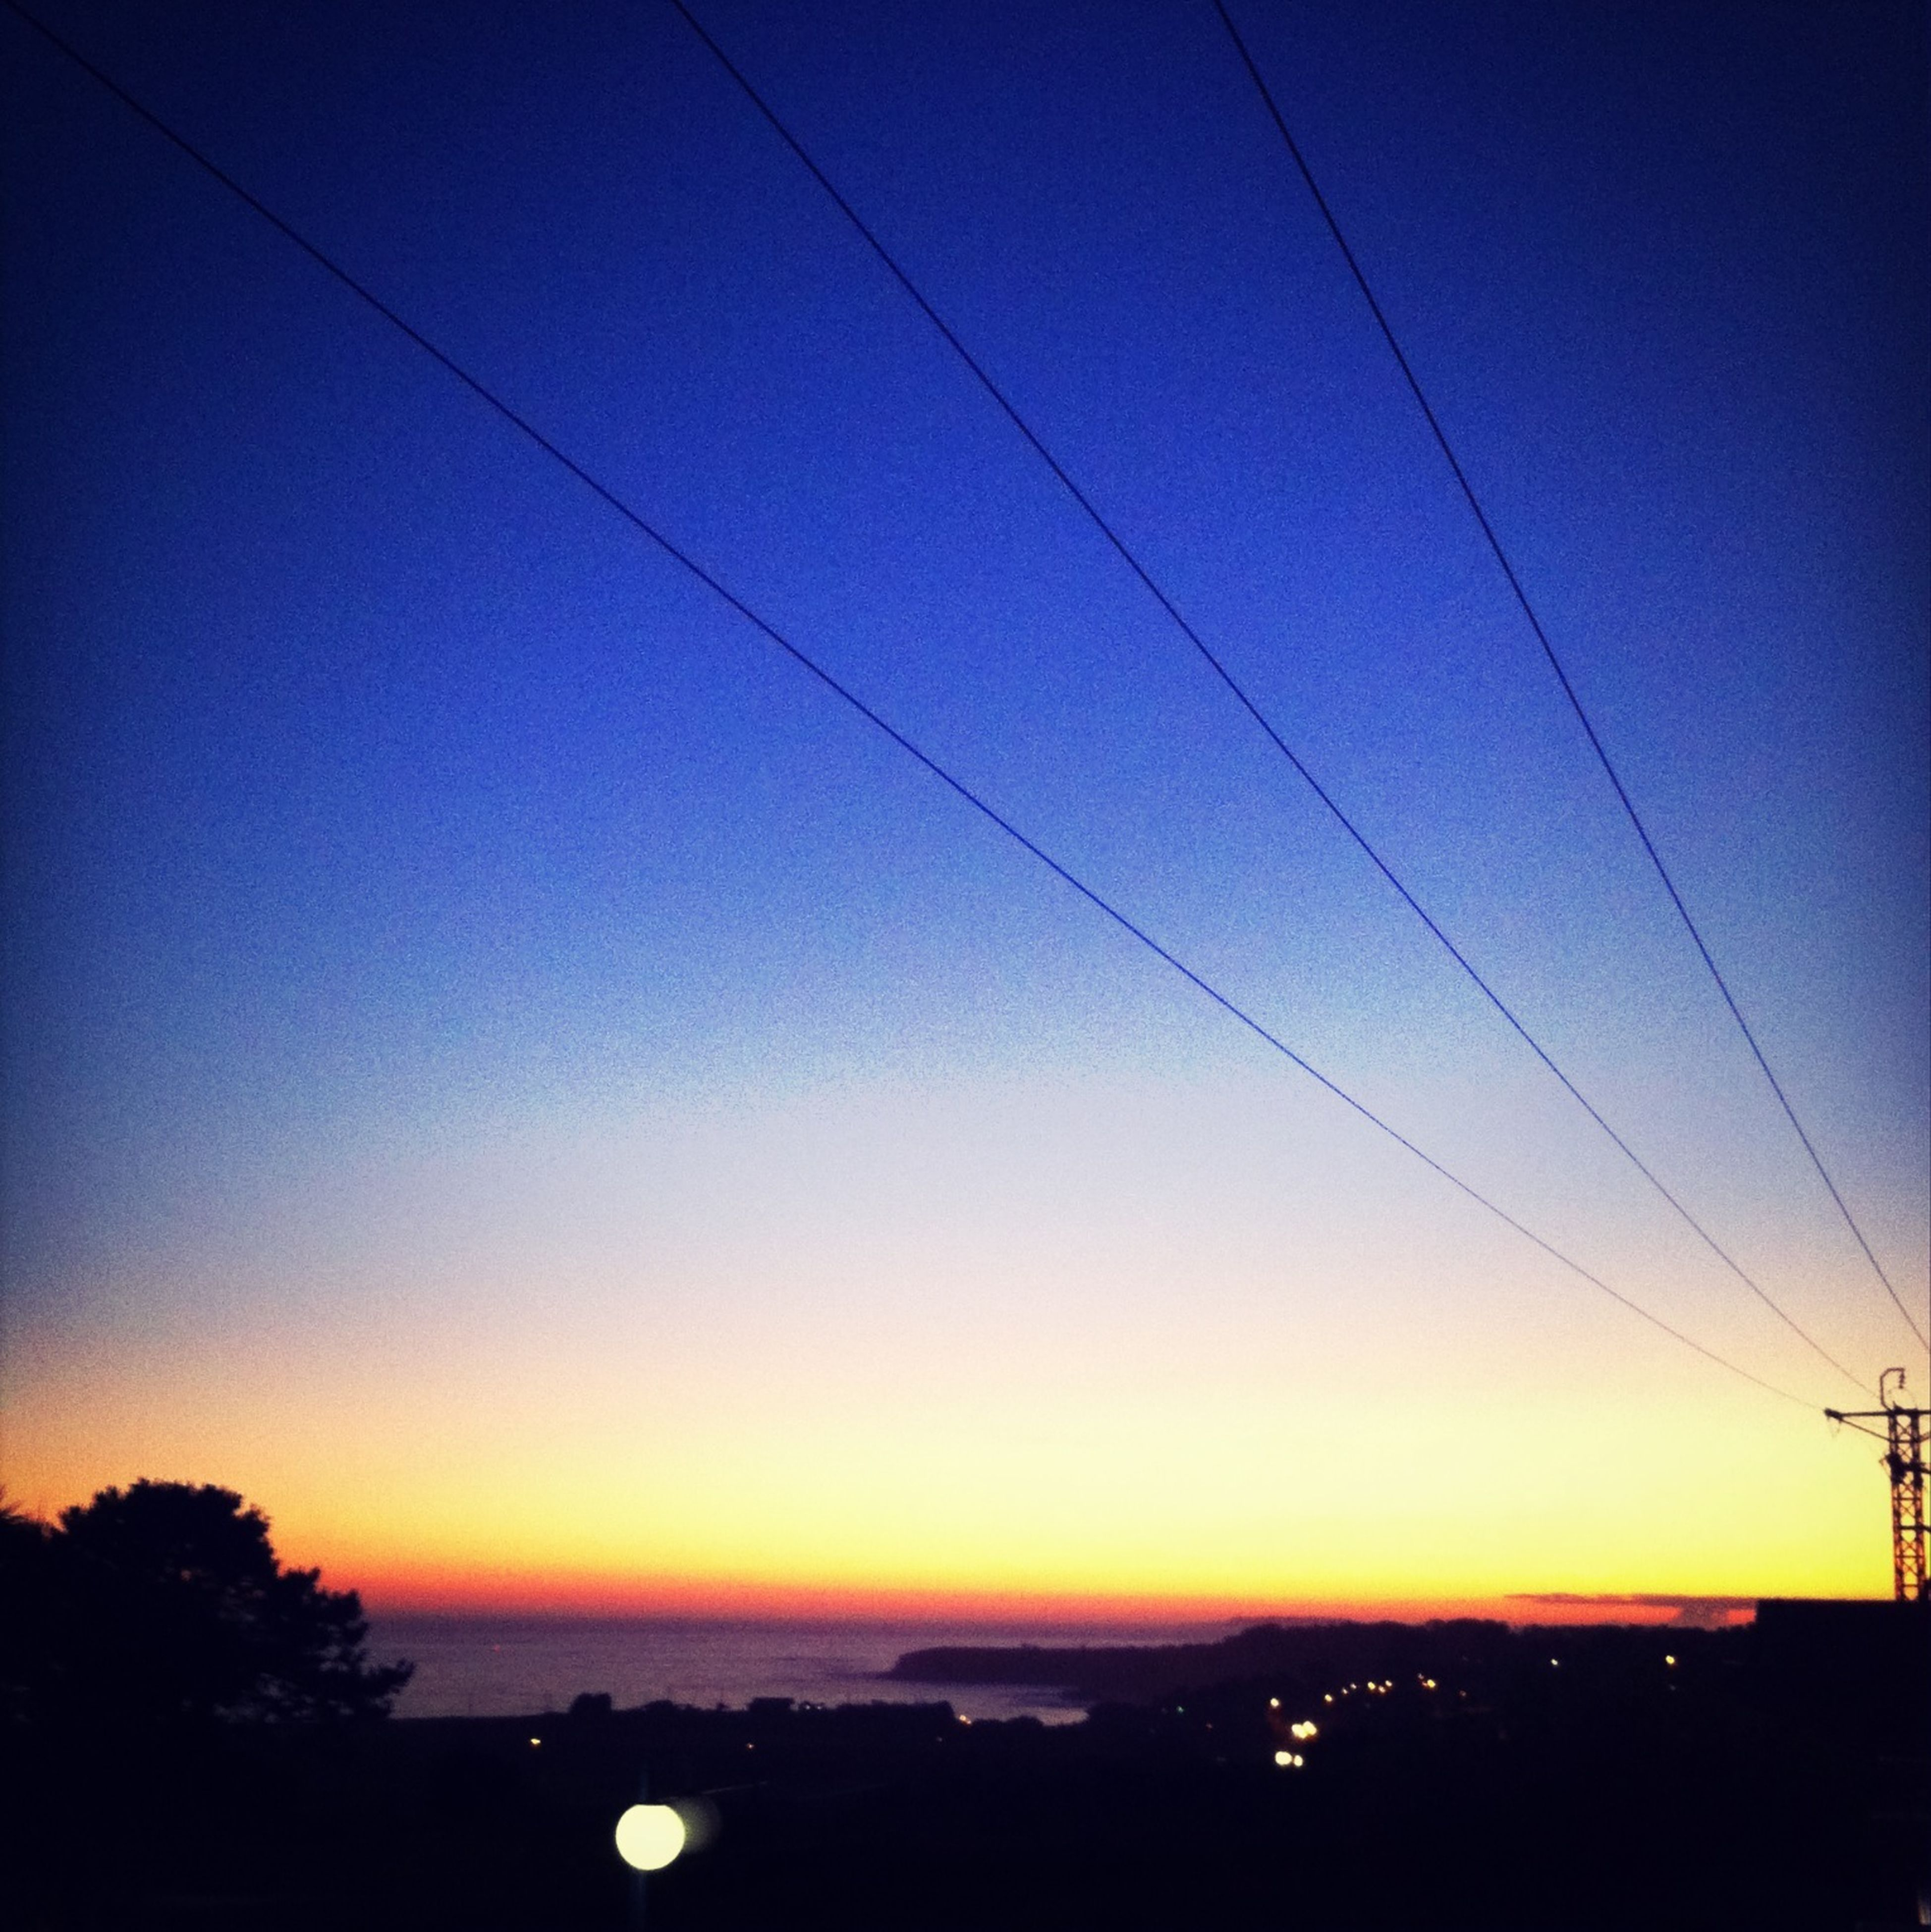 sunset, silhouette, power line, tranquility, tranquil scene, scenics, electricity, electricity pylon, beauty in nature, power supply, orange color, sky, cable, nature, clear sky, idyllic, sun, connection, blue, dusk